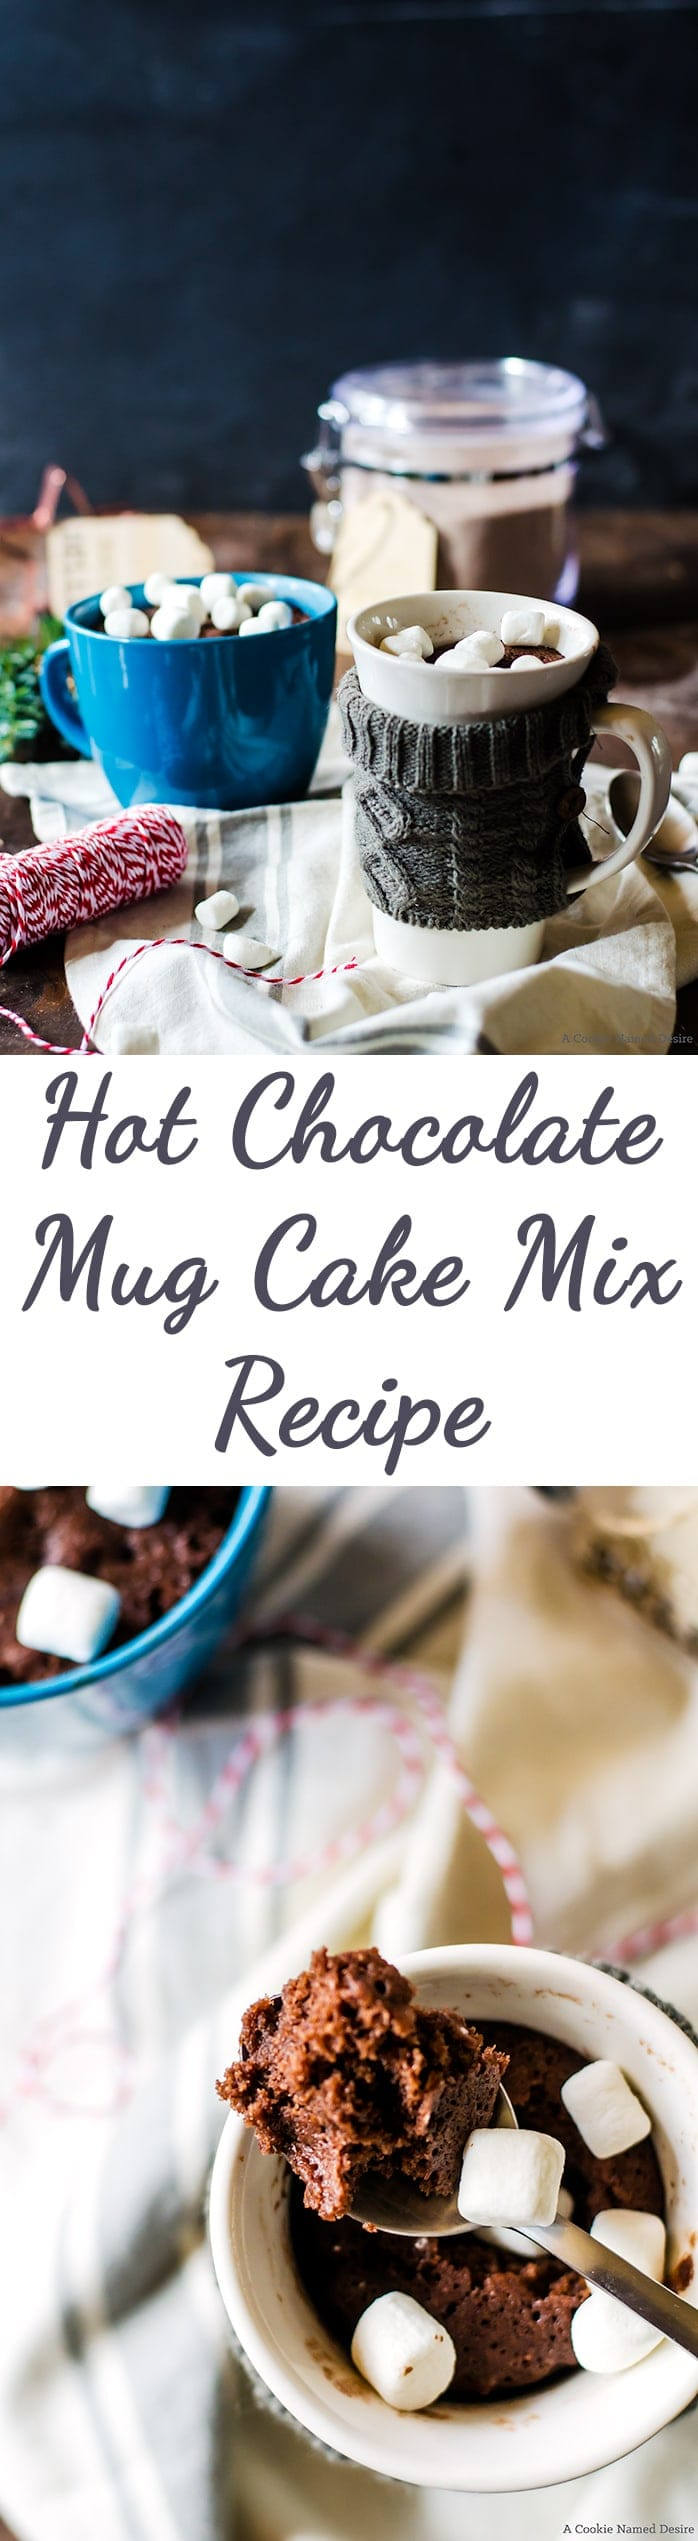 The perfect Christmas gift for anyone! This hot chocolate mug cake mix is the perfect dessert gift anyone would appreciate.